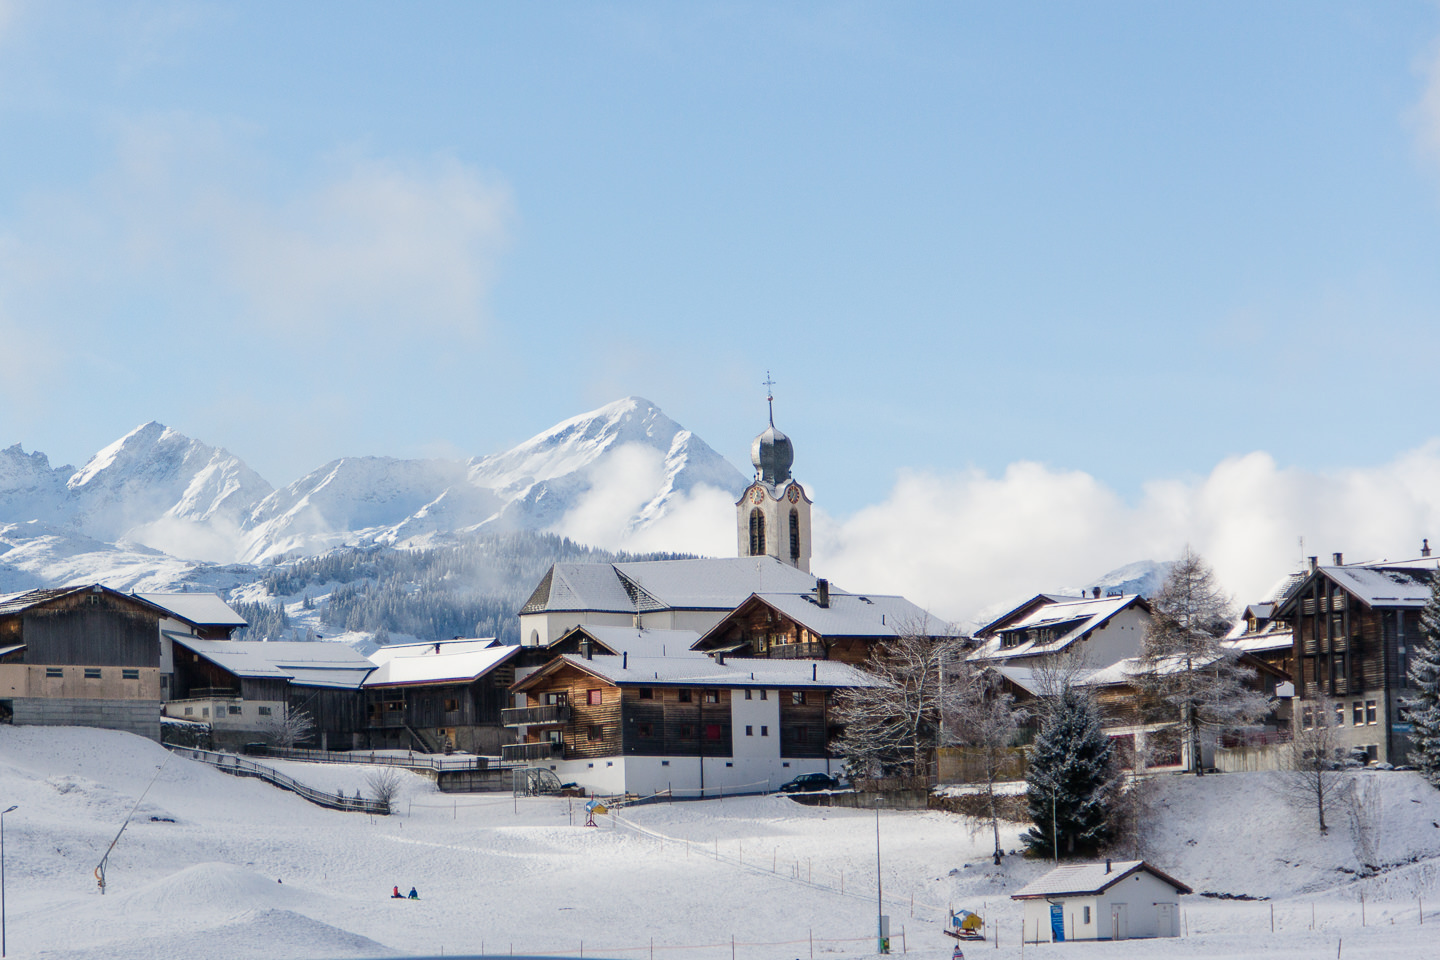 Winterurlaub in Brigels